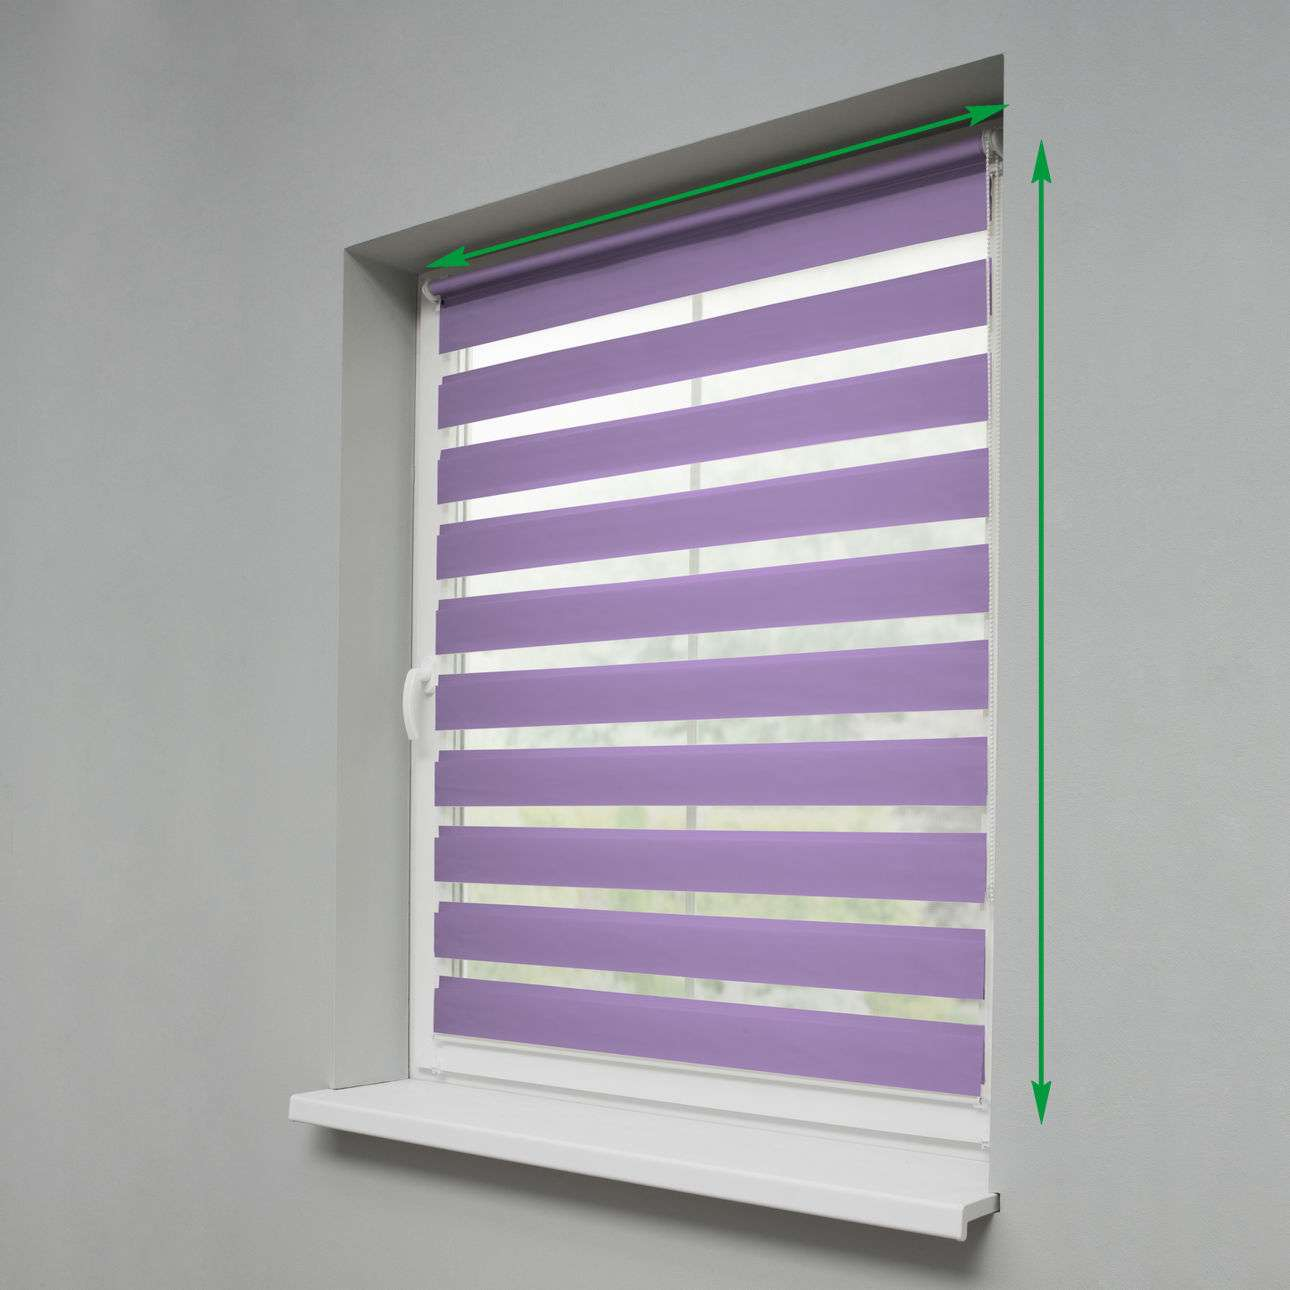 Mini Day & Night Roller Blind in collection Roller blinds Day & Night (Venetian blind), fabric: 0109